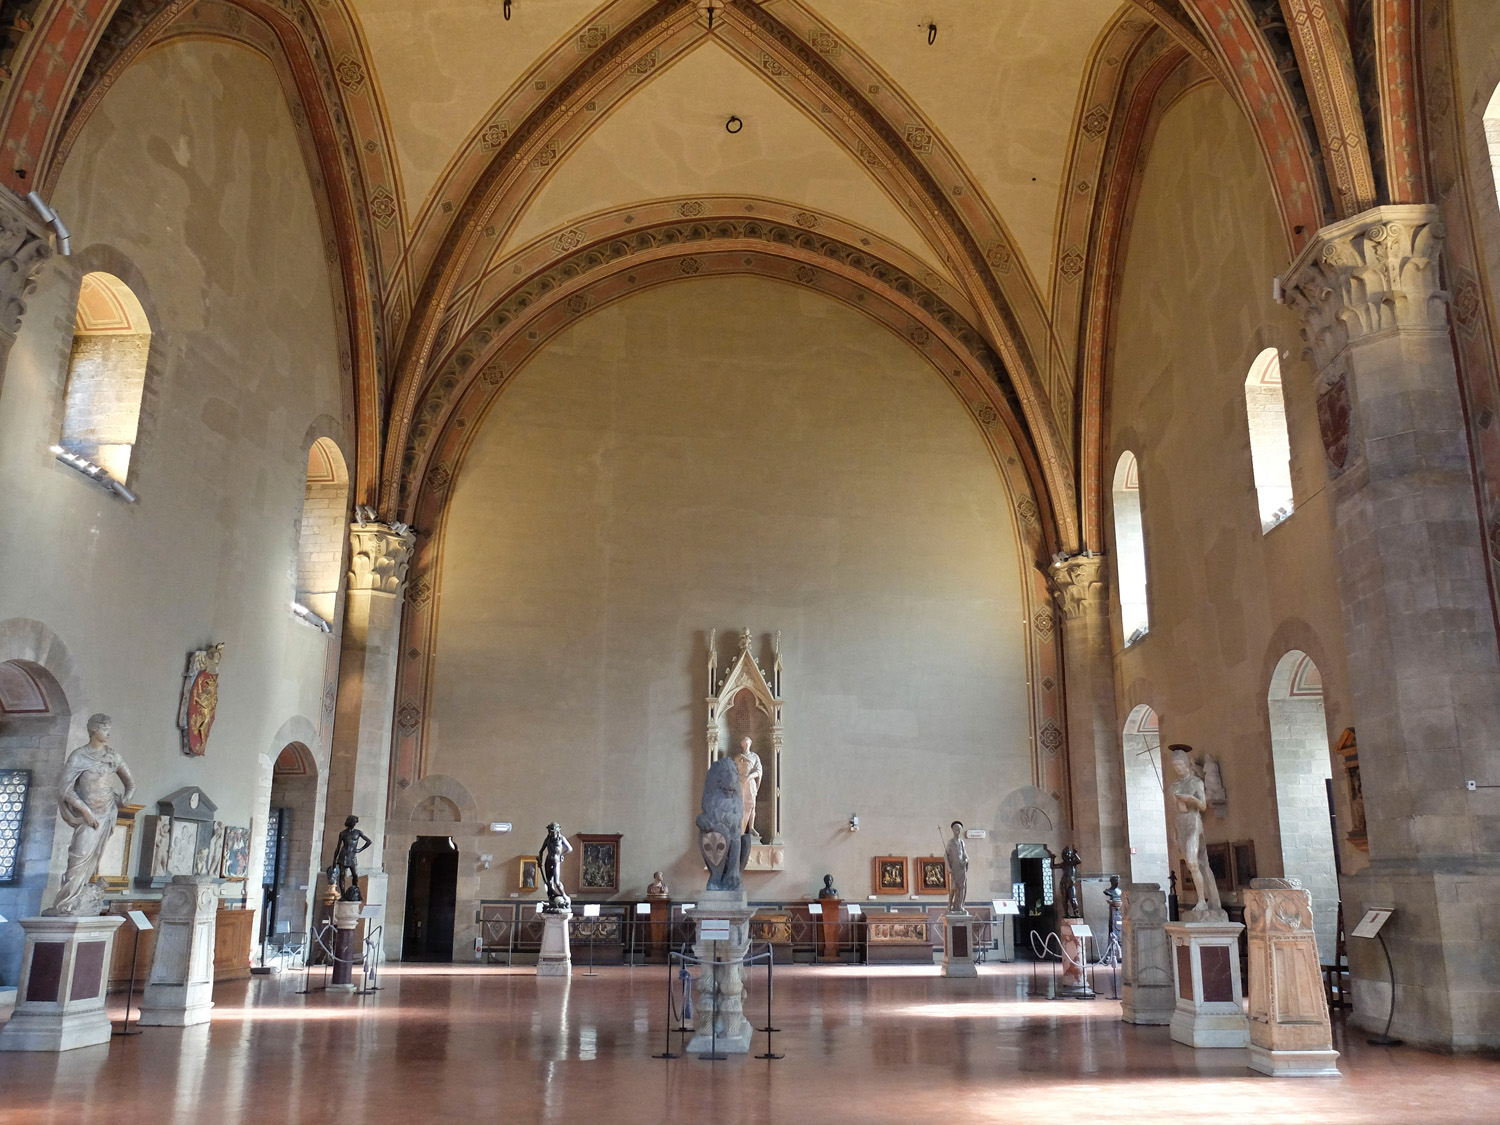 The Donatello room in the Bargello first thing in the morning!